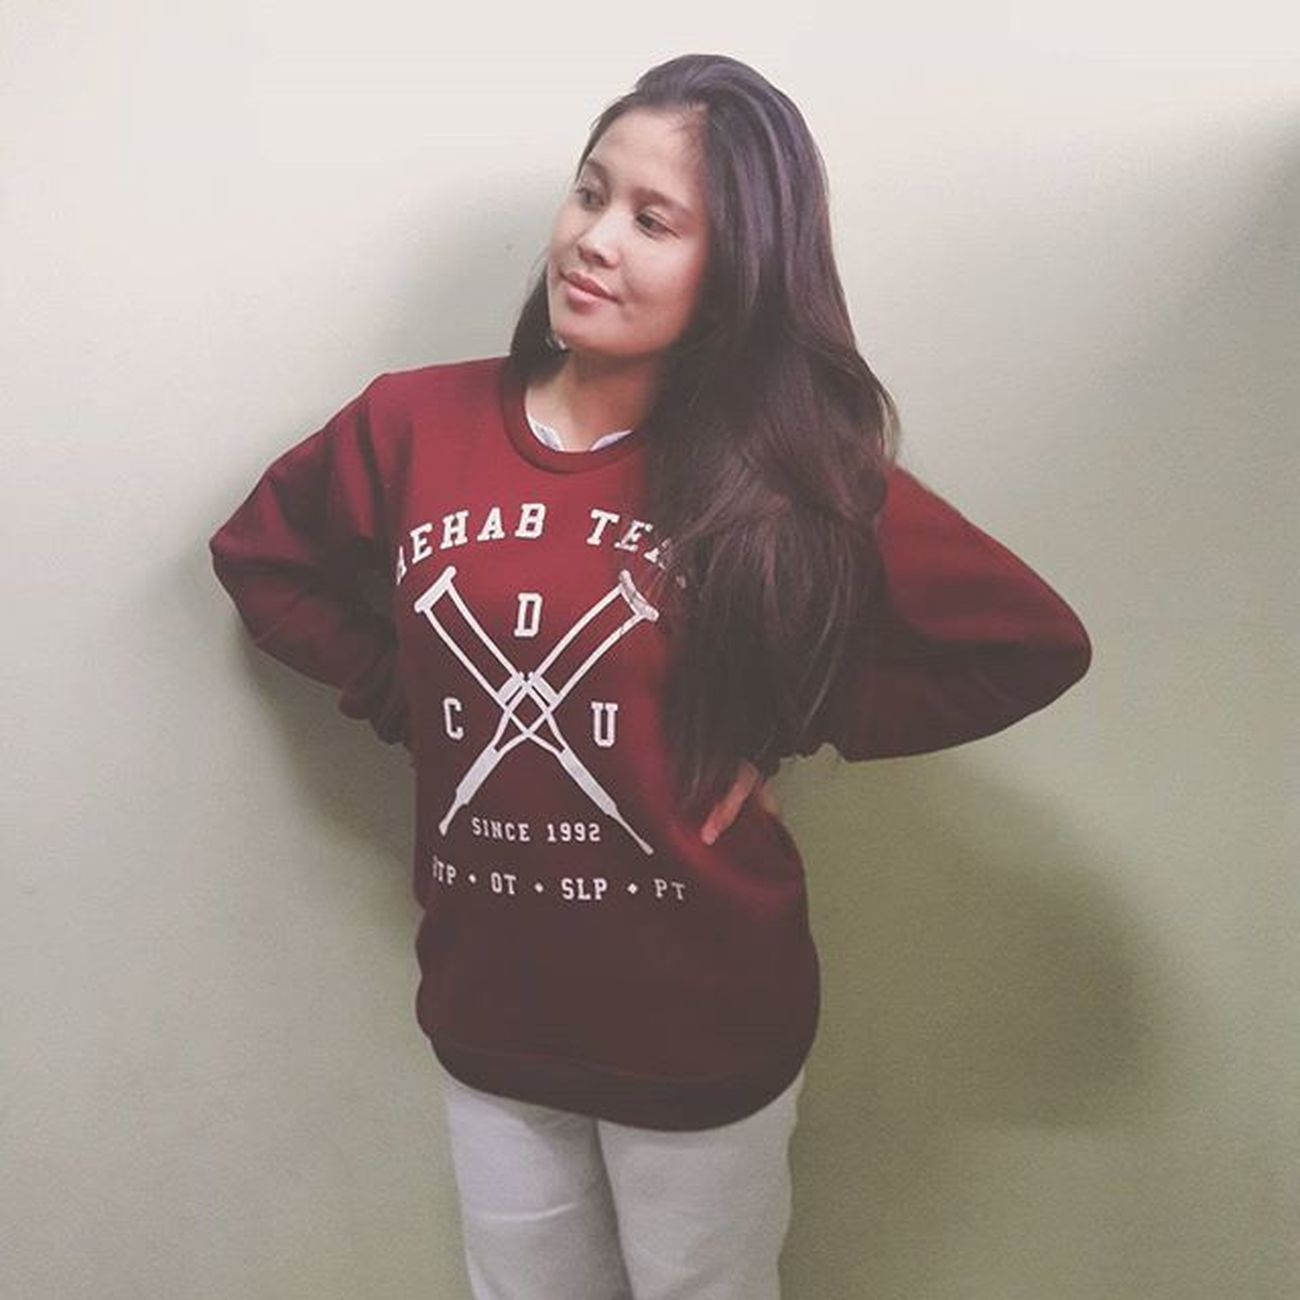 Avail of our RS sweat shirts at 650 pesos! Also available in gray. Sizes available - Small, Medium (the one in the picture), Large To place an order, contact either one of these numbers ----- (Lorenzi) 09434746060 or (Inna) 09176092756 All proceeds will be used for our community rehab programs. LONG LIVE REHAB SCIENCE!!!!! RehabScience RehabTeam OT Pt  Slp RTP Cdu